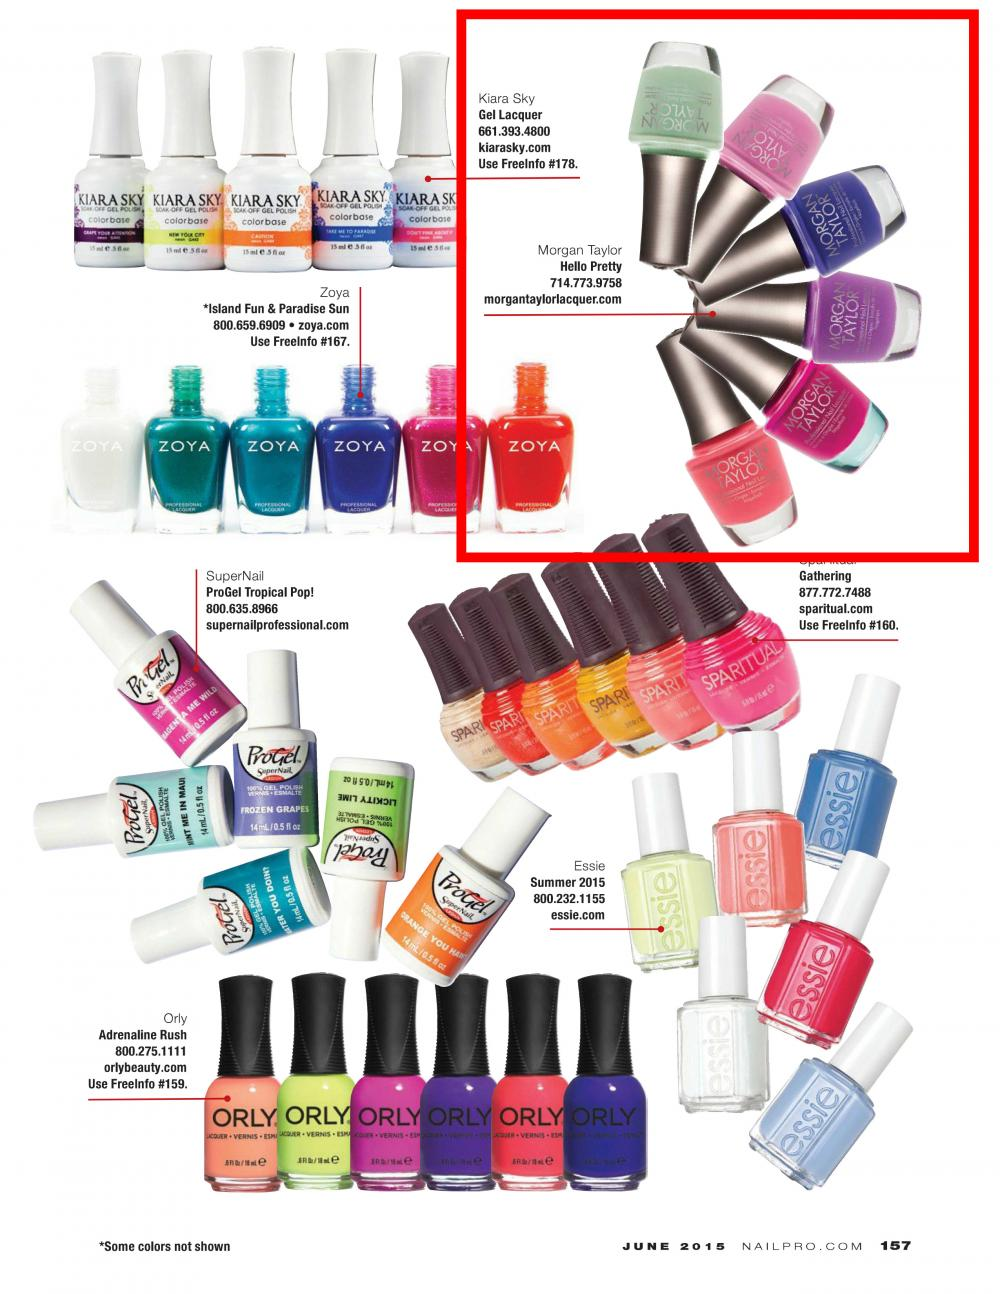 NAILPRO MAGAZINE - June, 2015